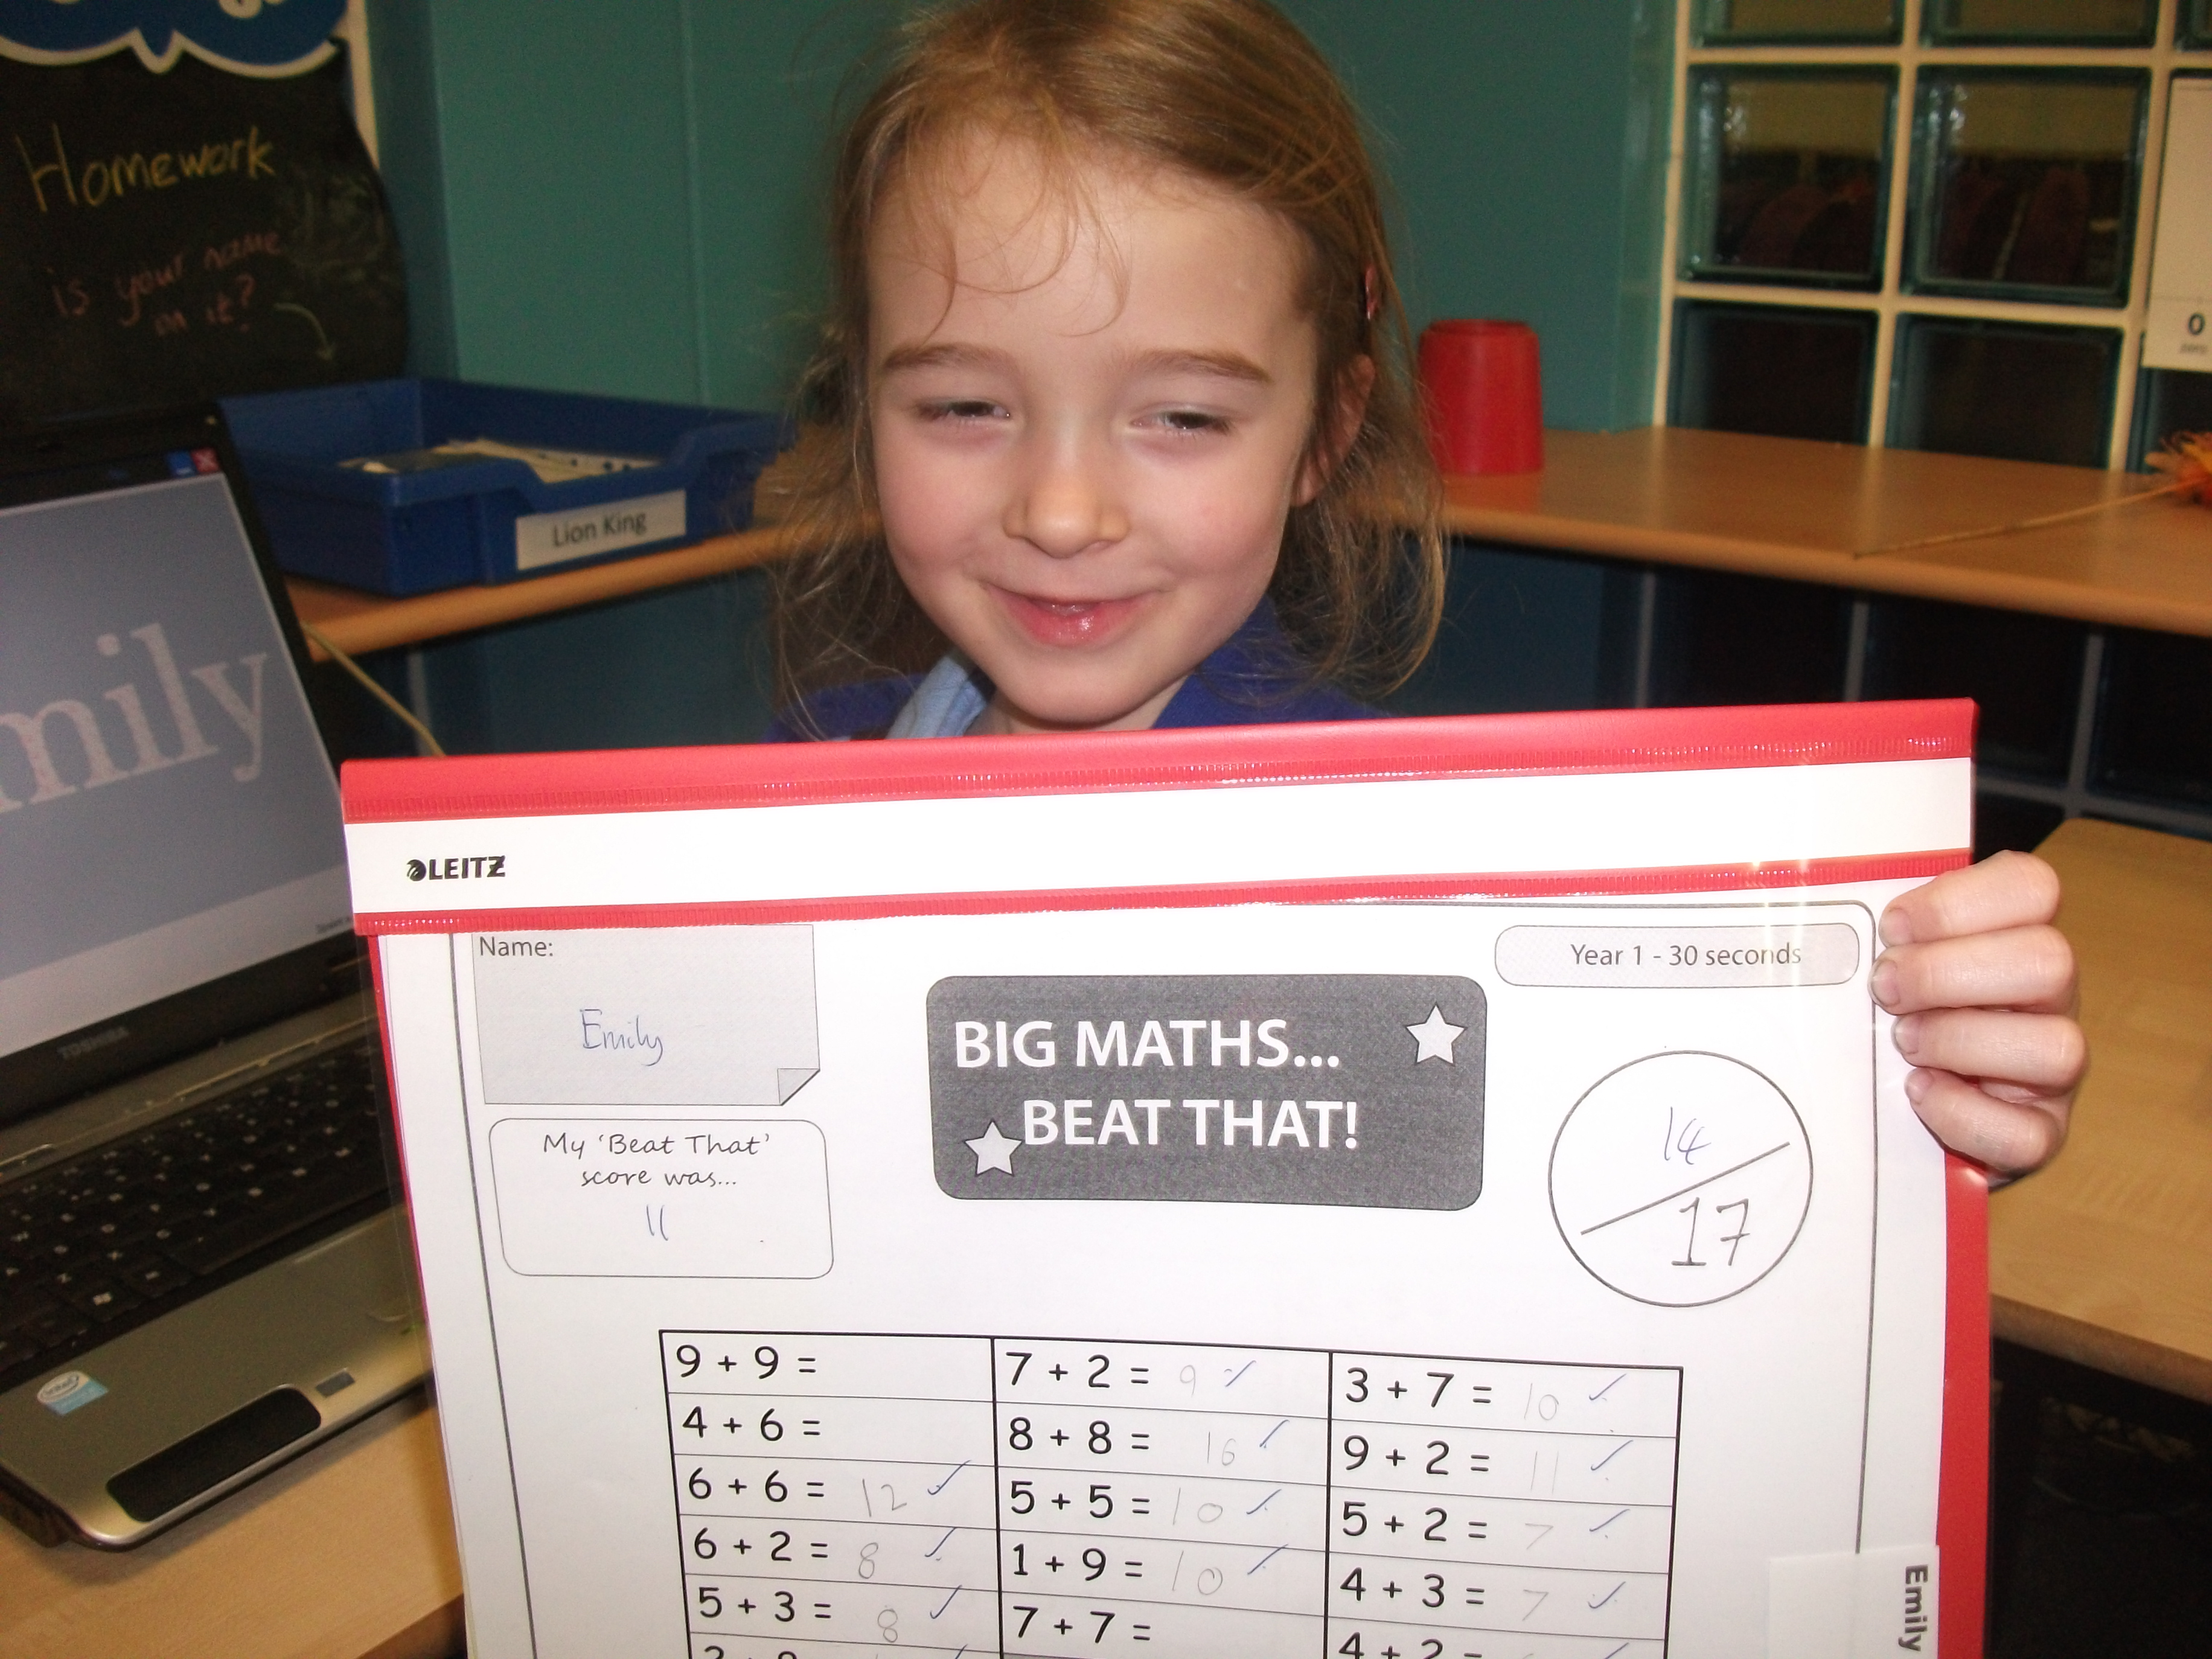 Some Great Big Maths Beat That Scores This Week